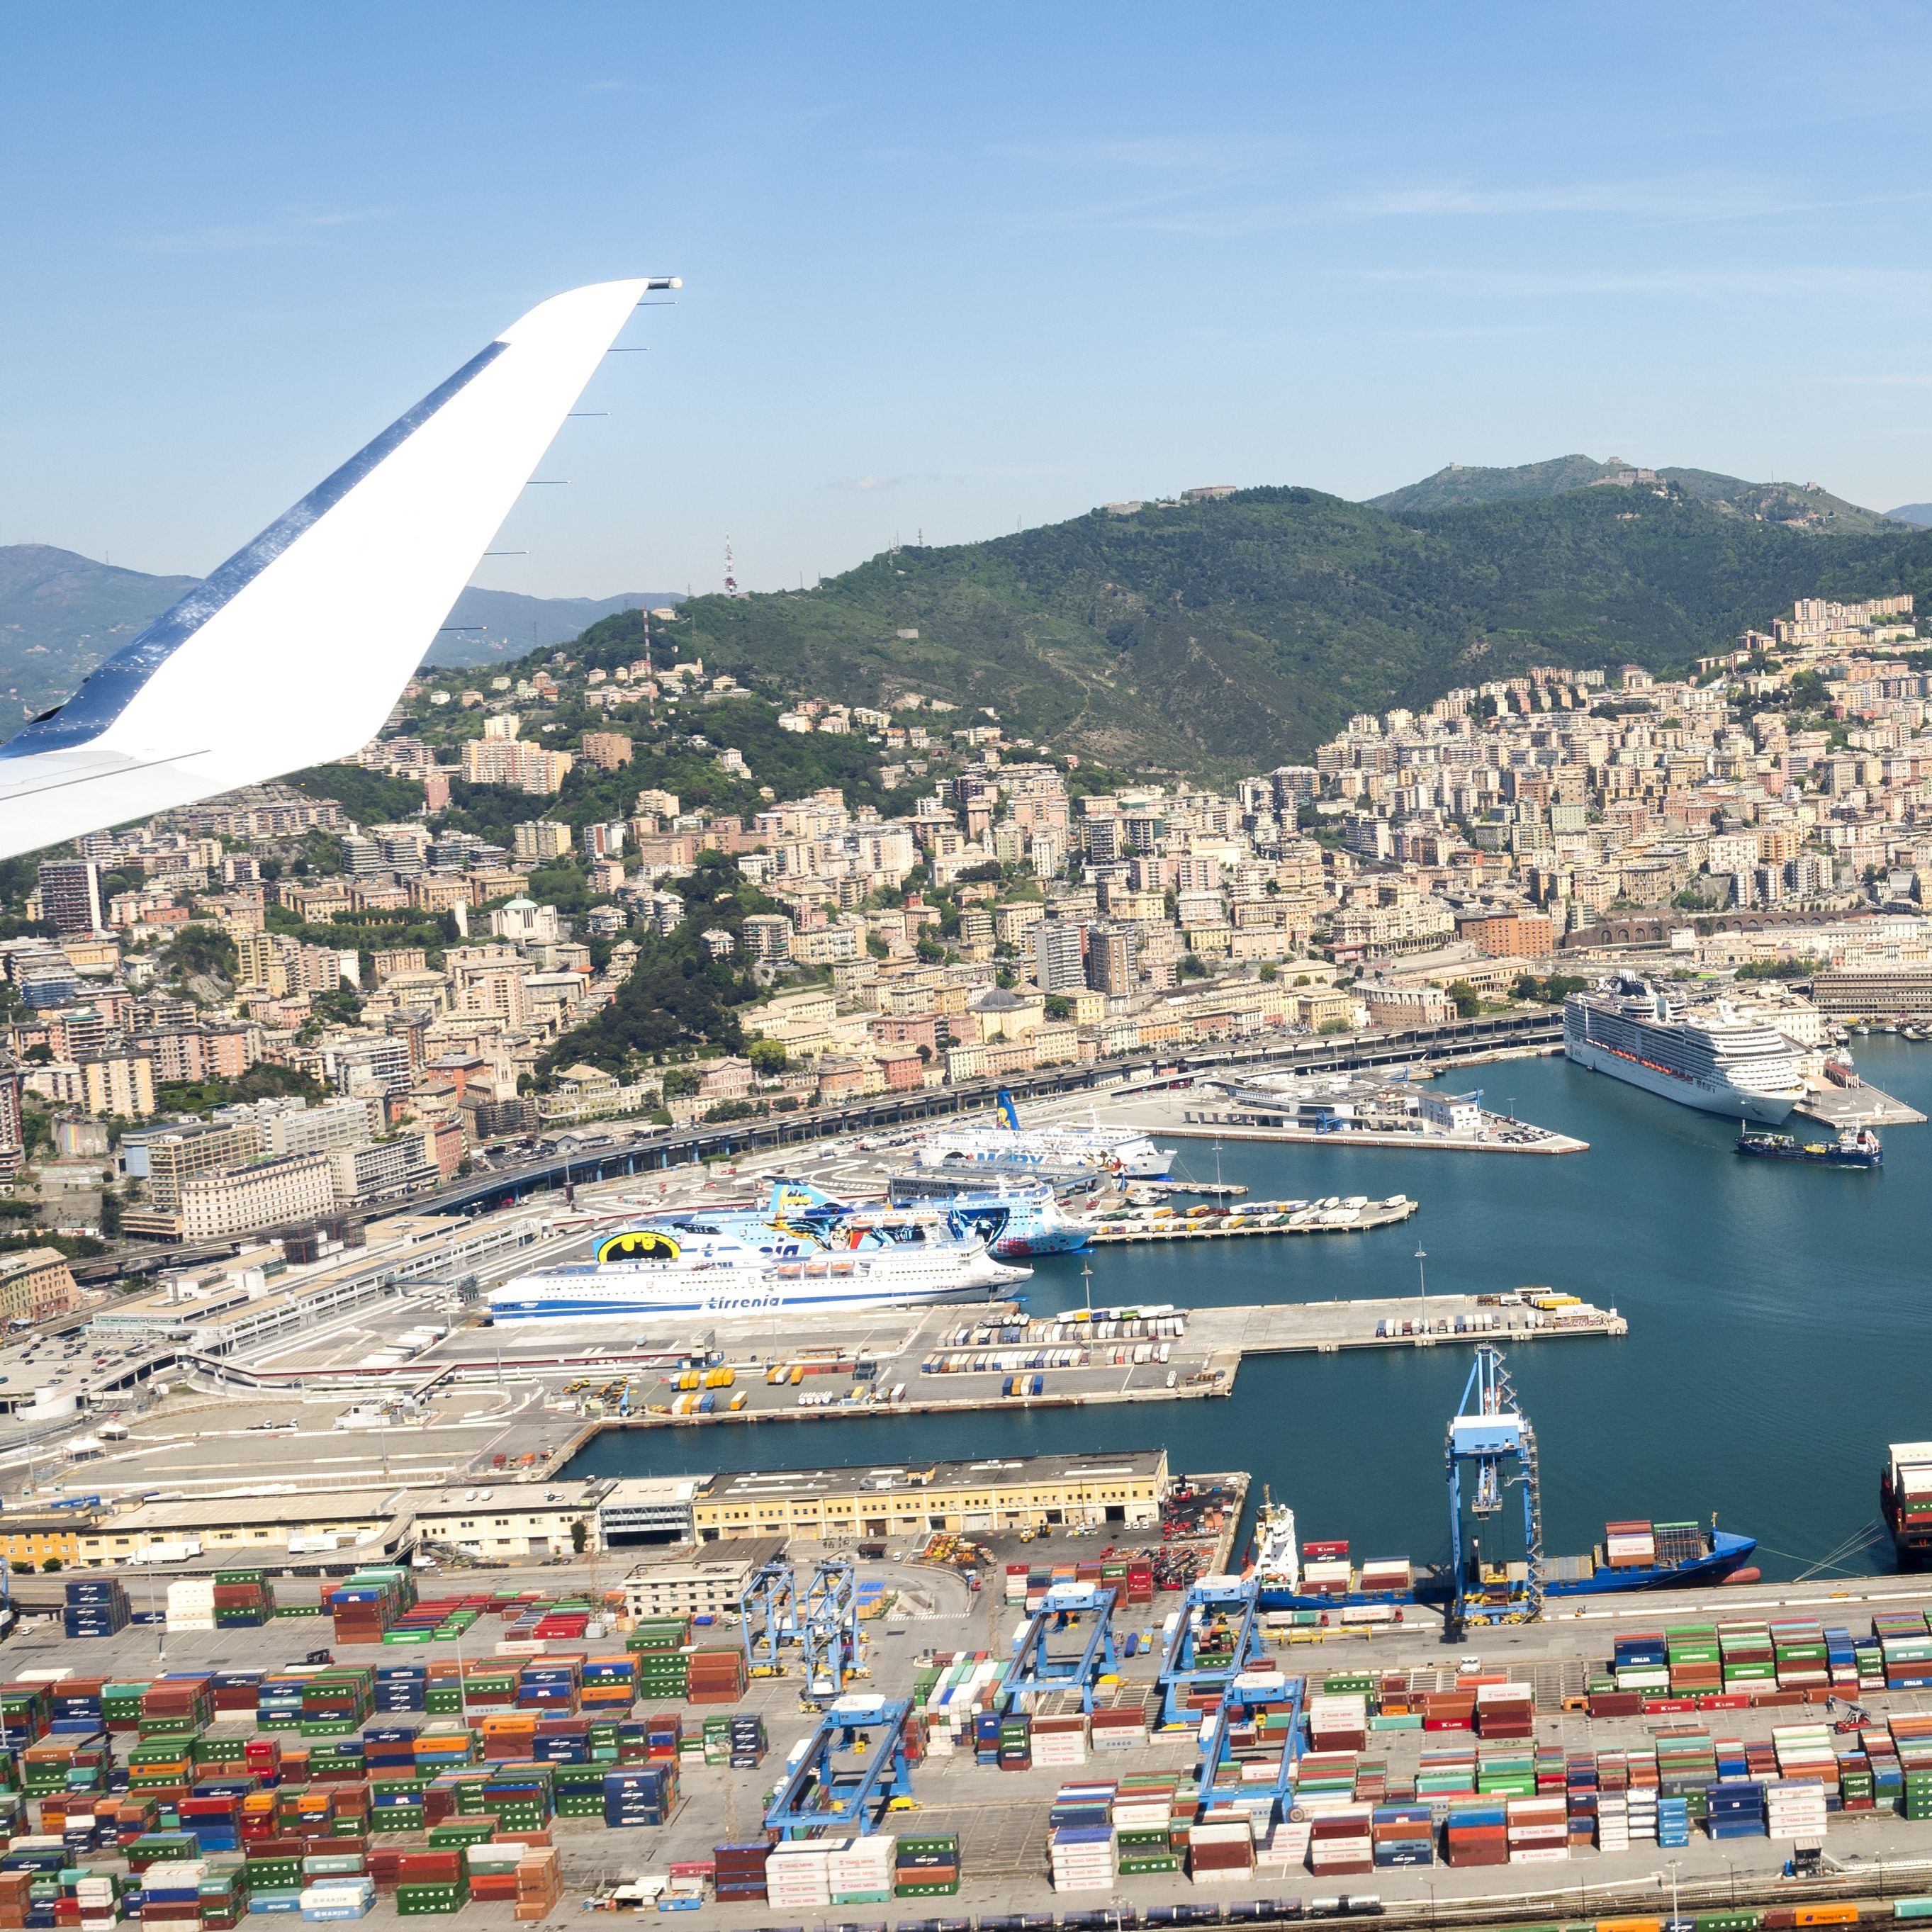 Genoa by plane